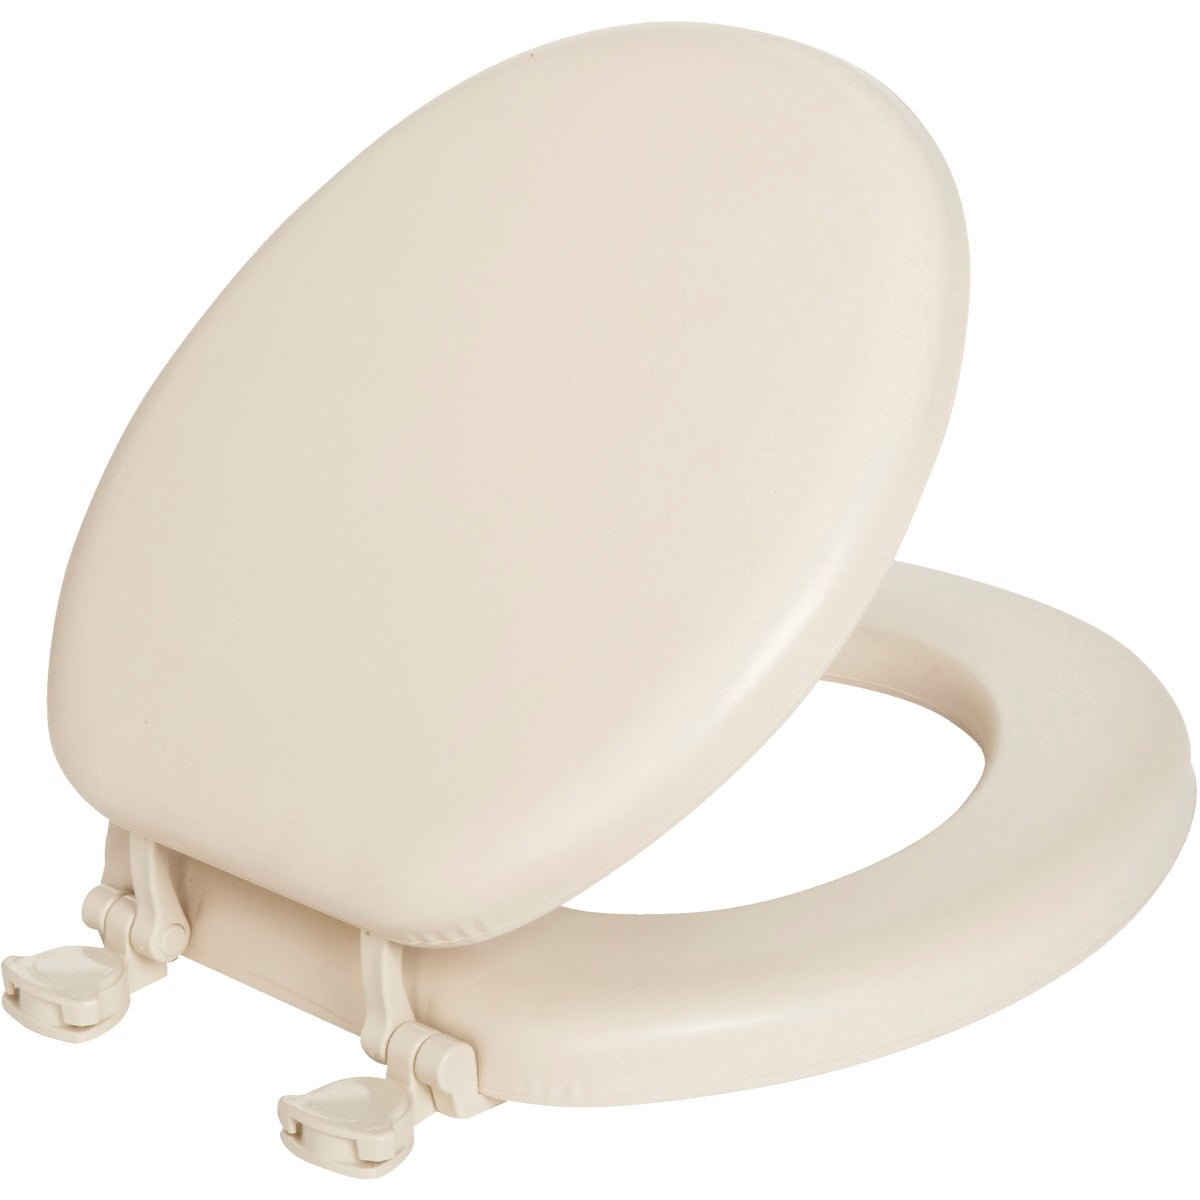 BONE SOFT ROUND SEAT - 13EC-006 by Bemis Mfg